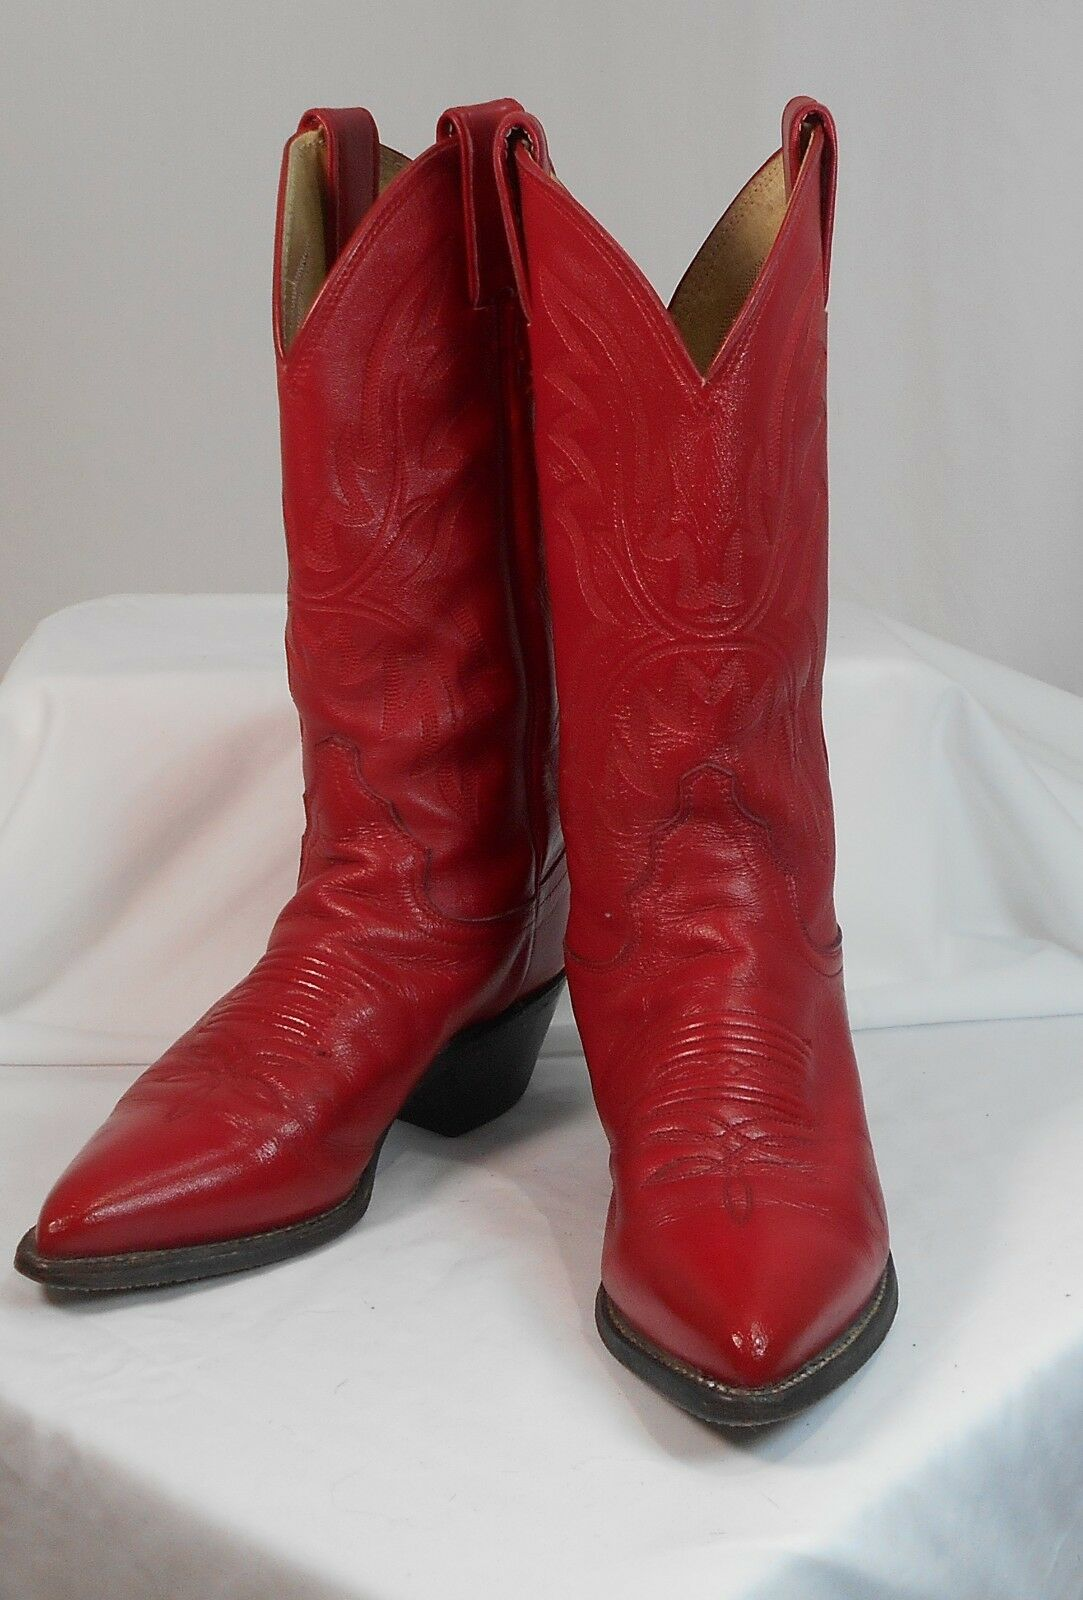 JUSTIN WOMENS SIZE 5 B  STYLE L 4905 RED HOT RED LEATHER EXCELLENT CONDITION